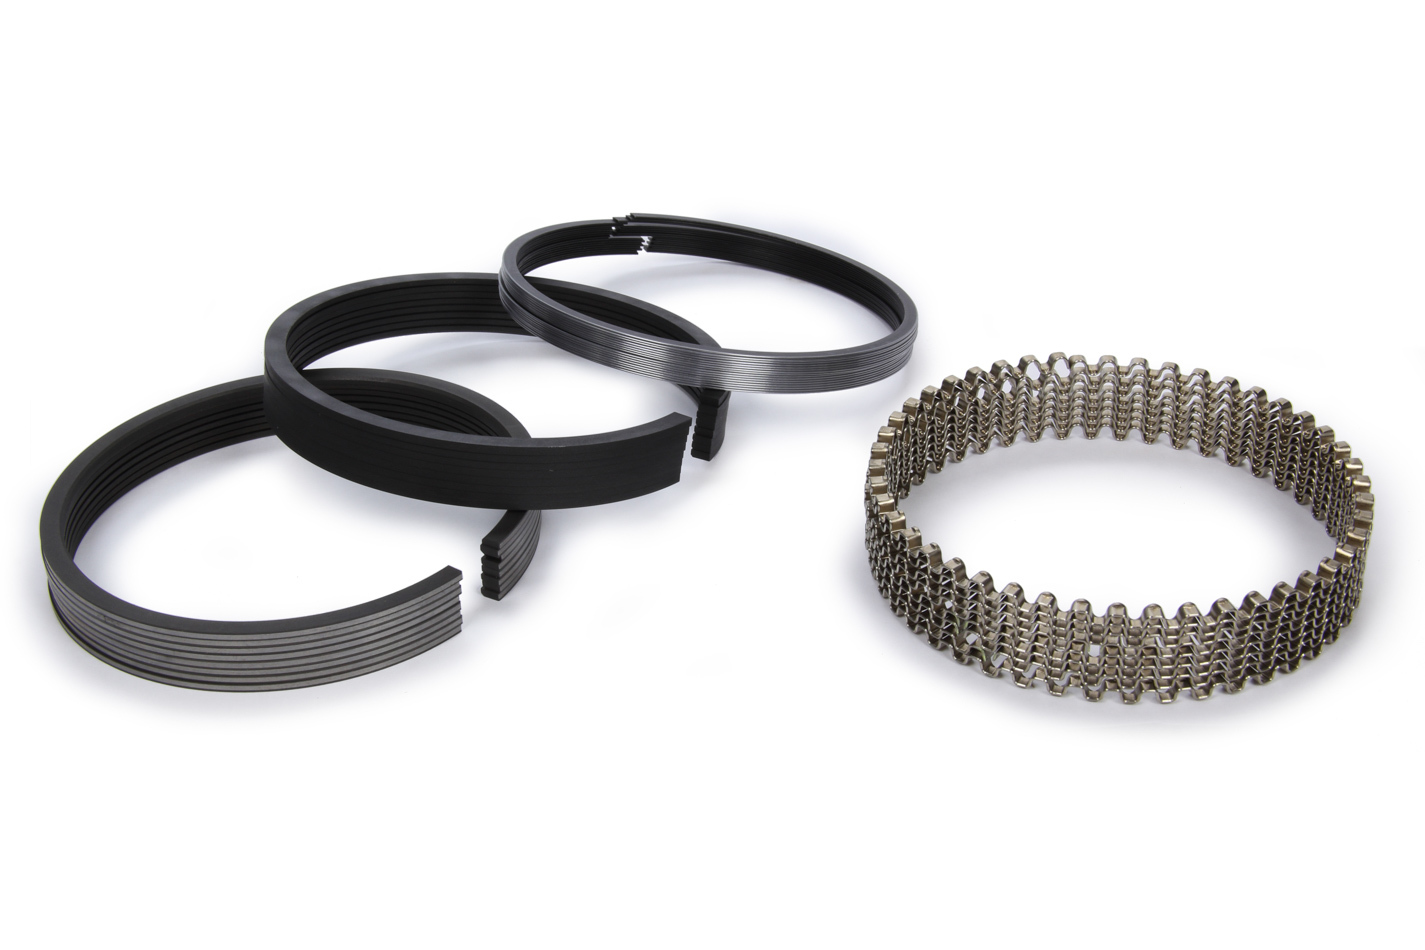 1.2 x 1.2 x 3.0 mm Thick Stainless Steel Kit Piston Rings 8 Cylinder Standard Tension 4.035 in Bore